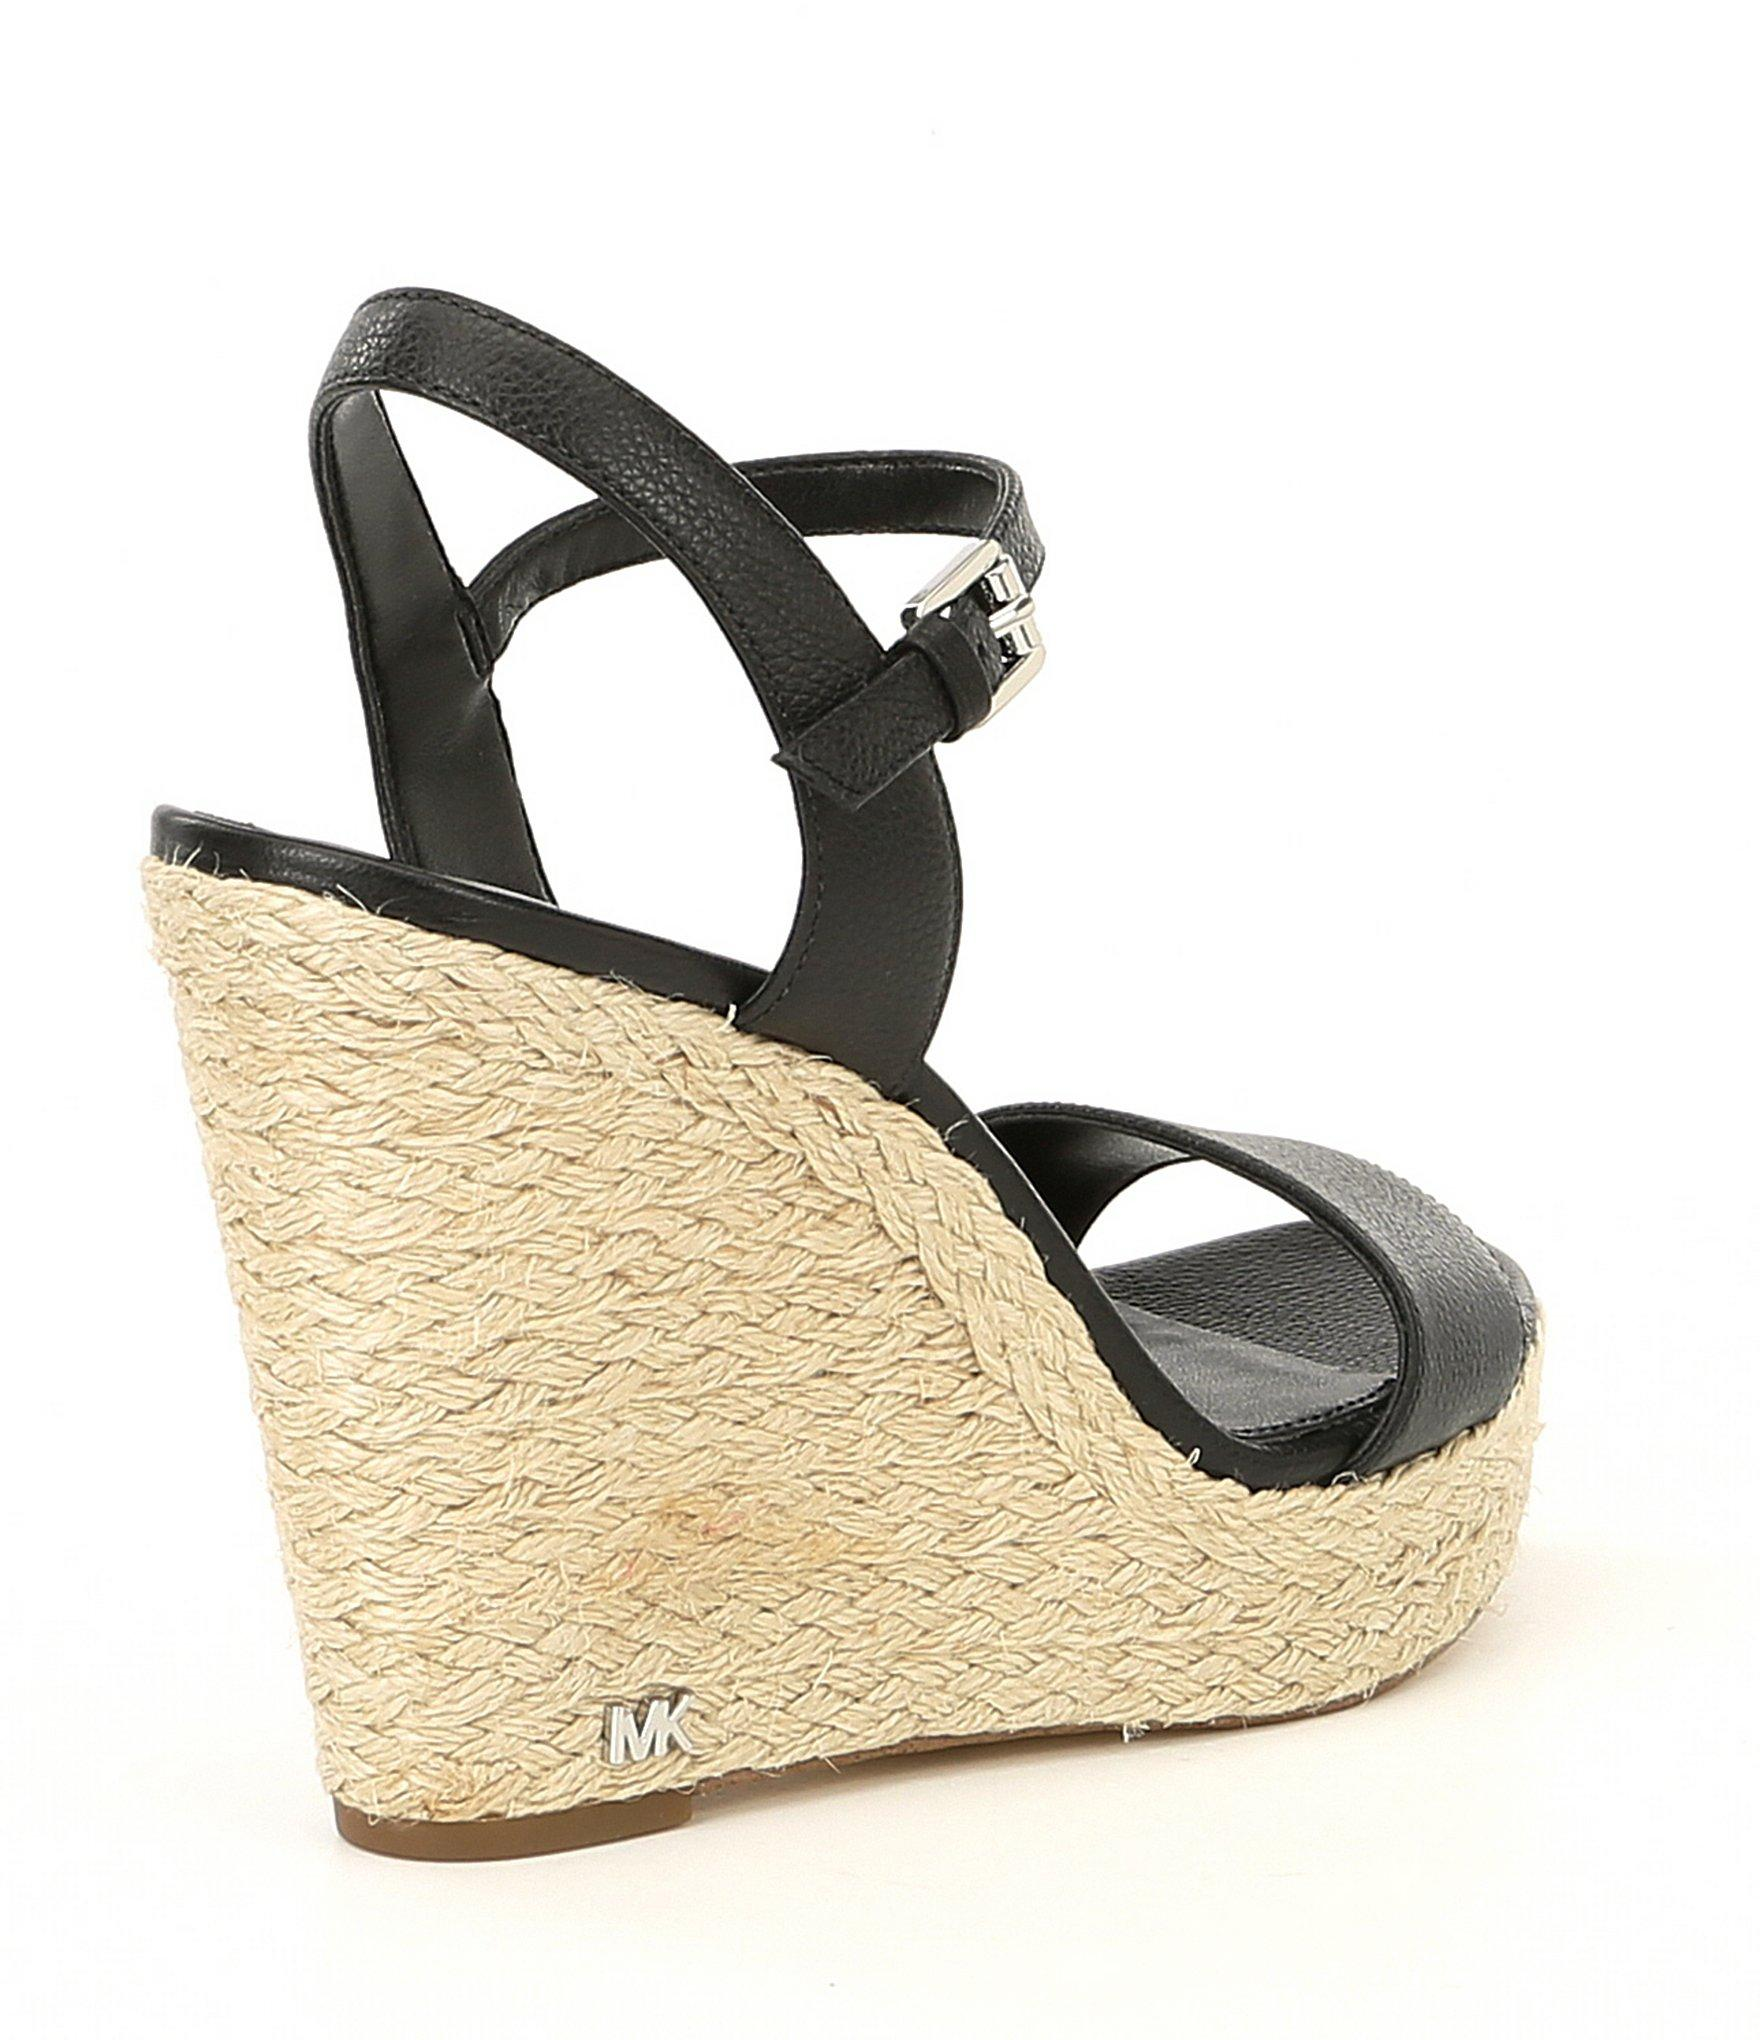 415e6c7de5e3 MICHAEL Michael Kors - Black Jill Espadrille Wedge Sandals - Lyst. View  fullscreen